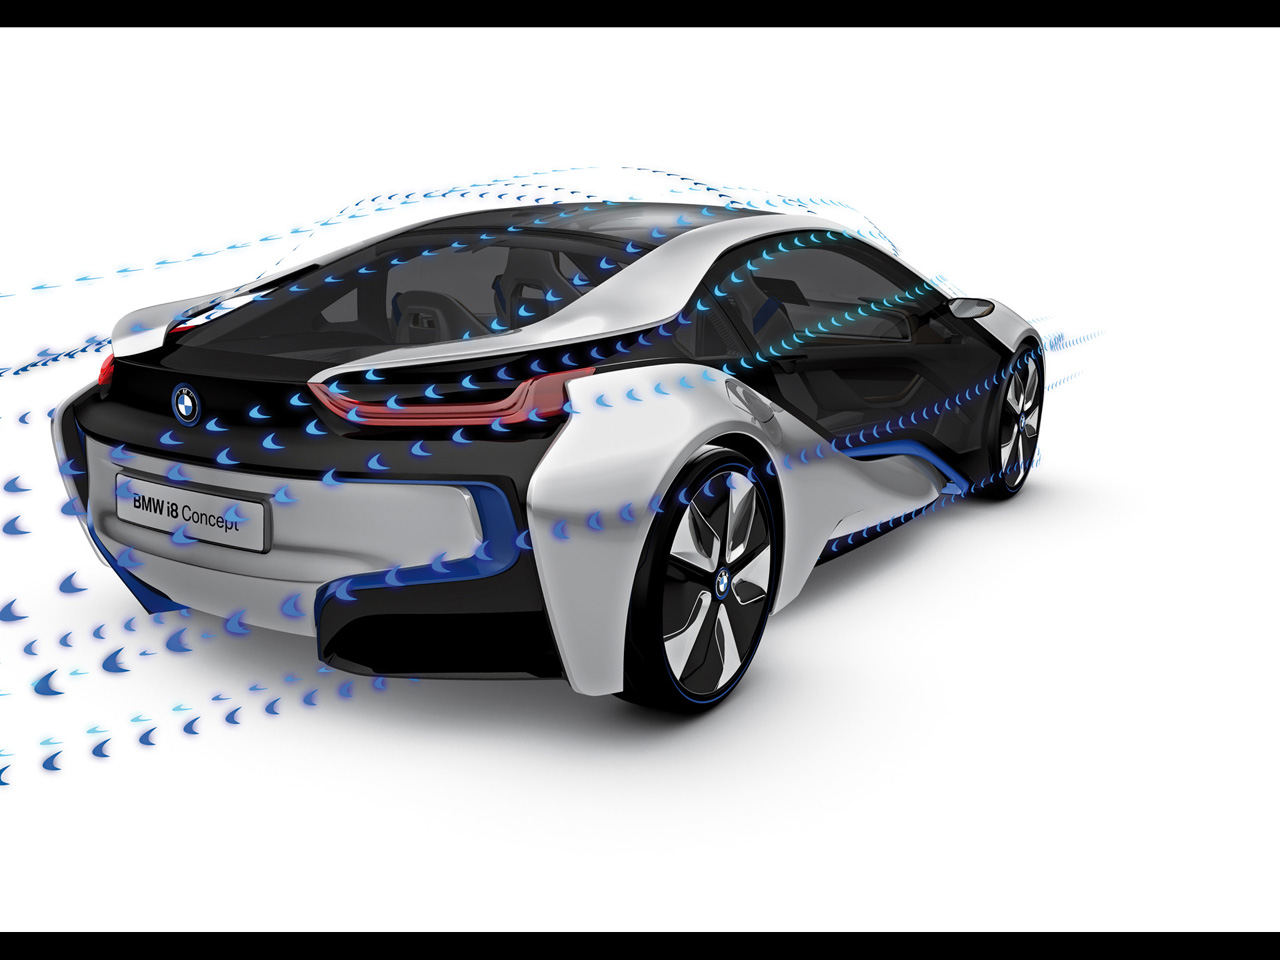 bmw i8 concept 2011 luxury and fast cars. Black Bedroom Furniture Sets. Home Design Ideas